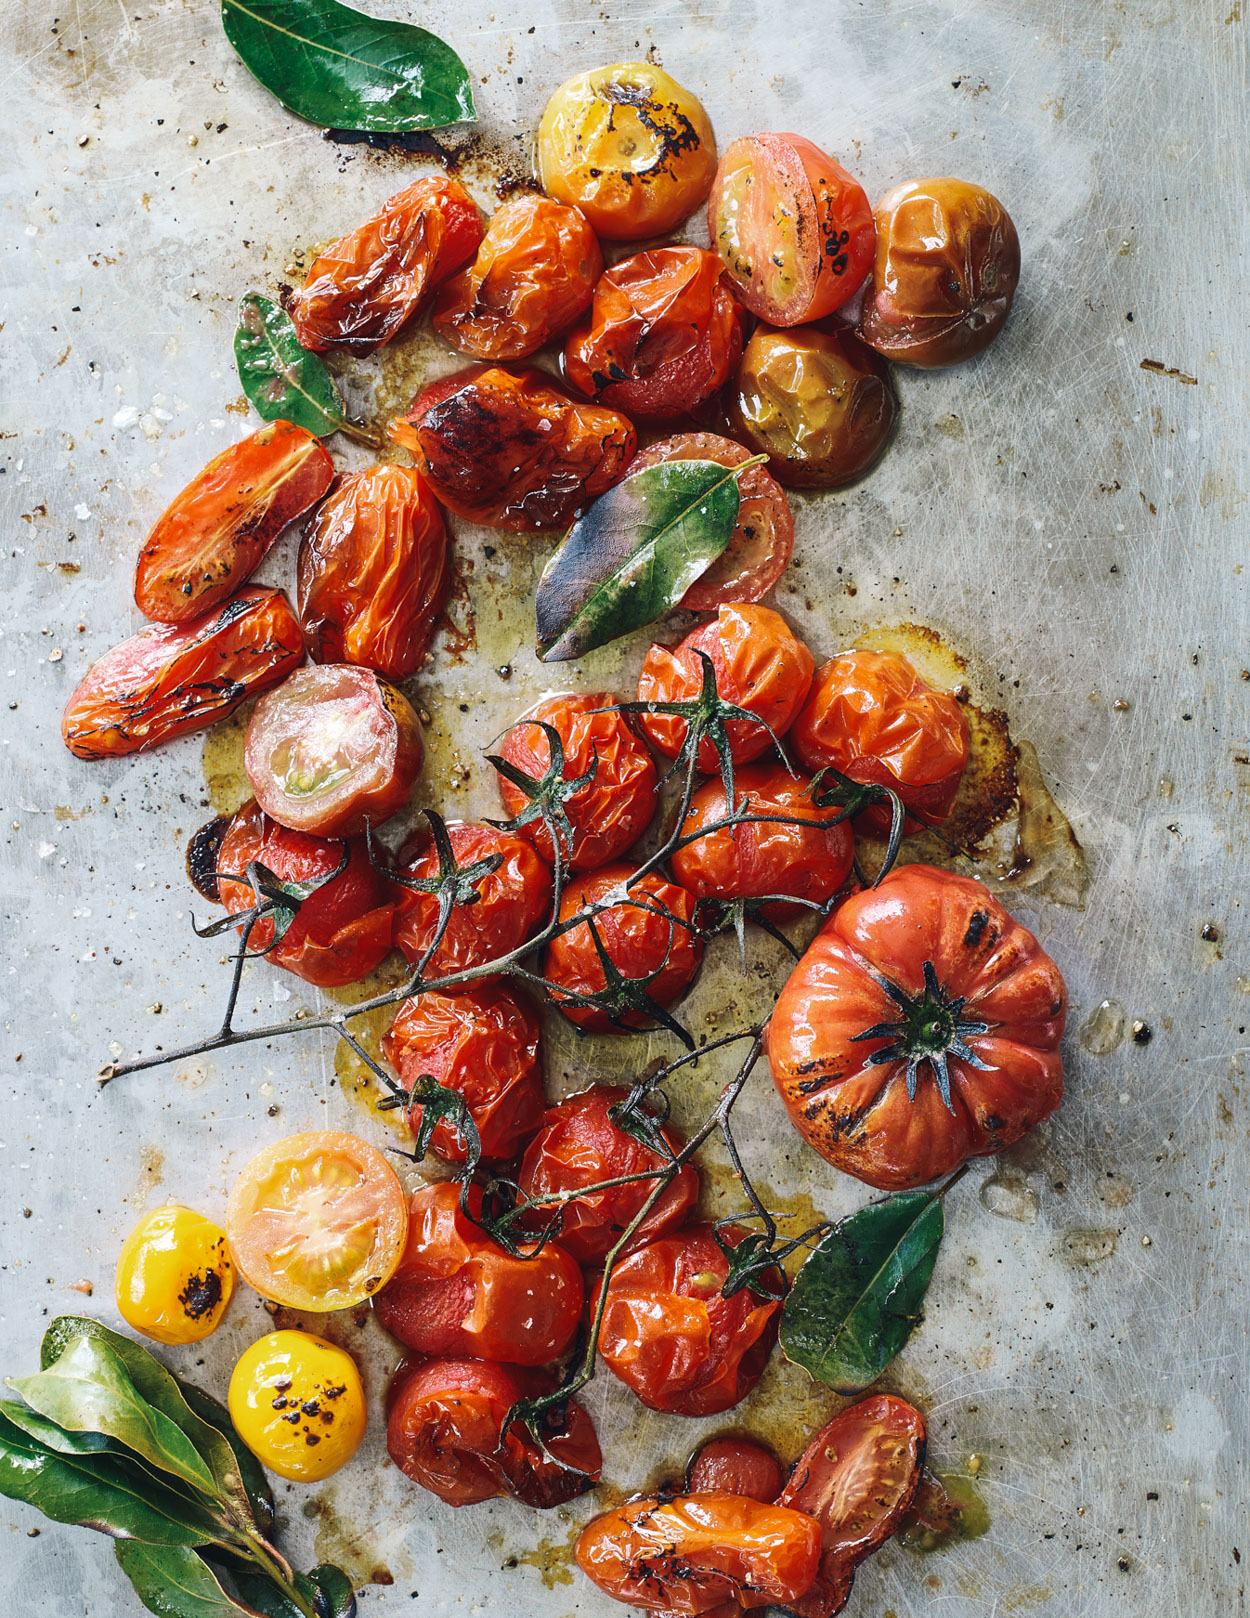 Los Angeles Food photographer - Cooking in Season  Cookbook tomatoes  by Ray Kachatorian